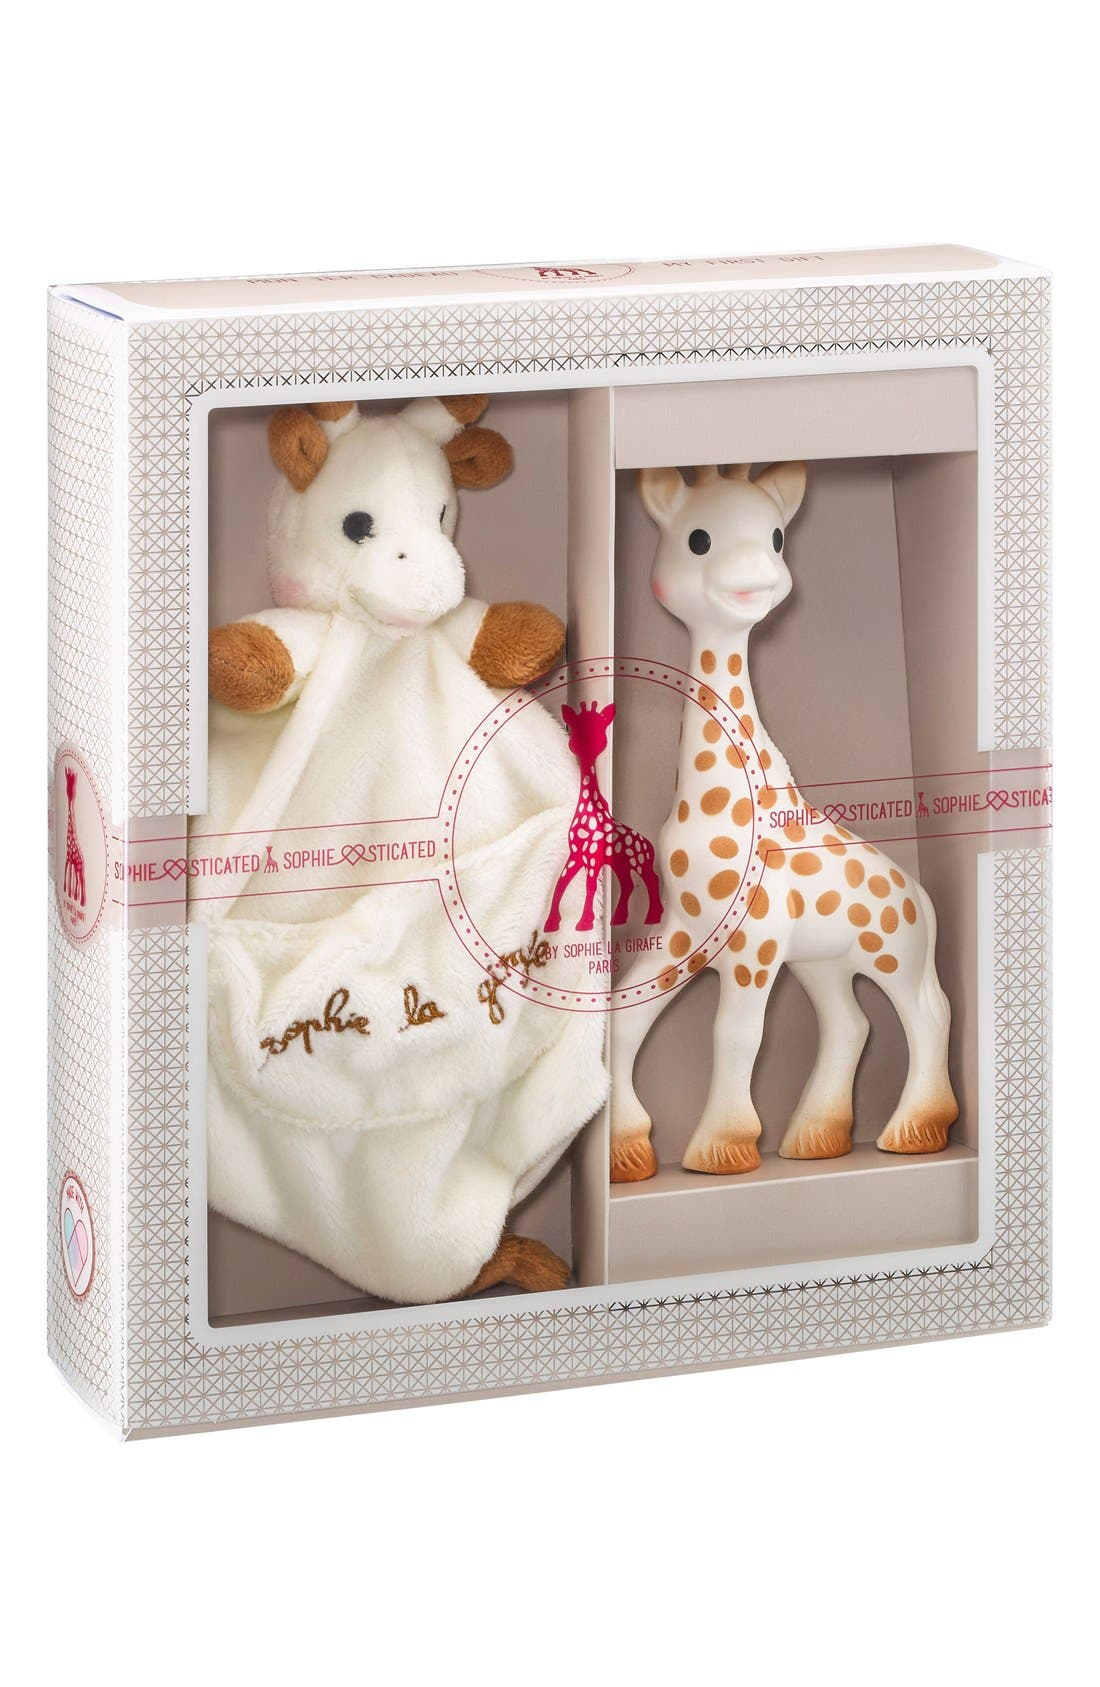 Sophie la Girafe 'Sophiesticated' Plush Toy & Teething Toy